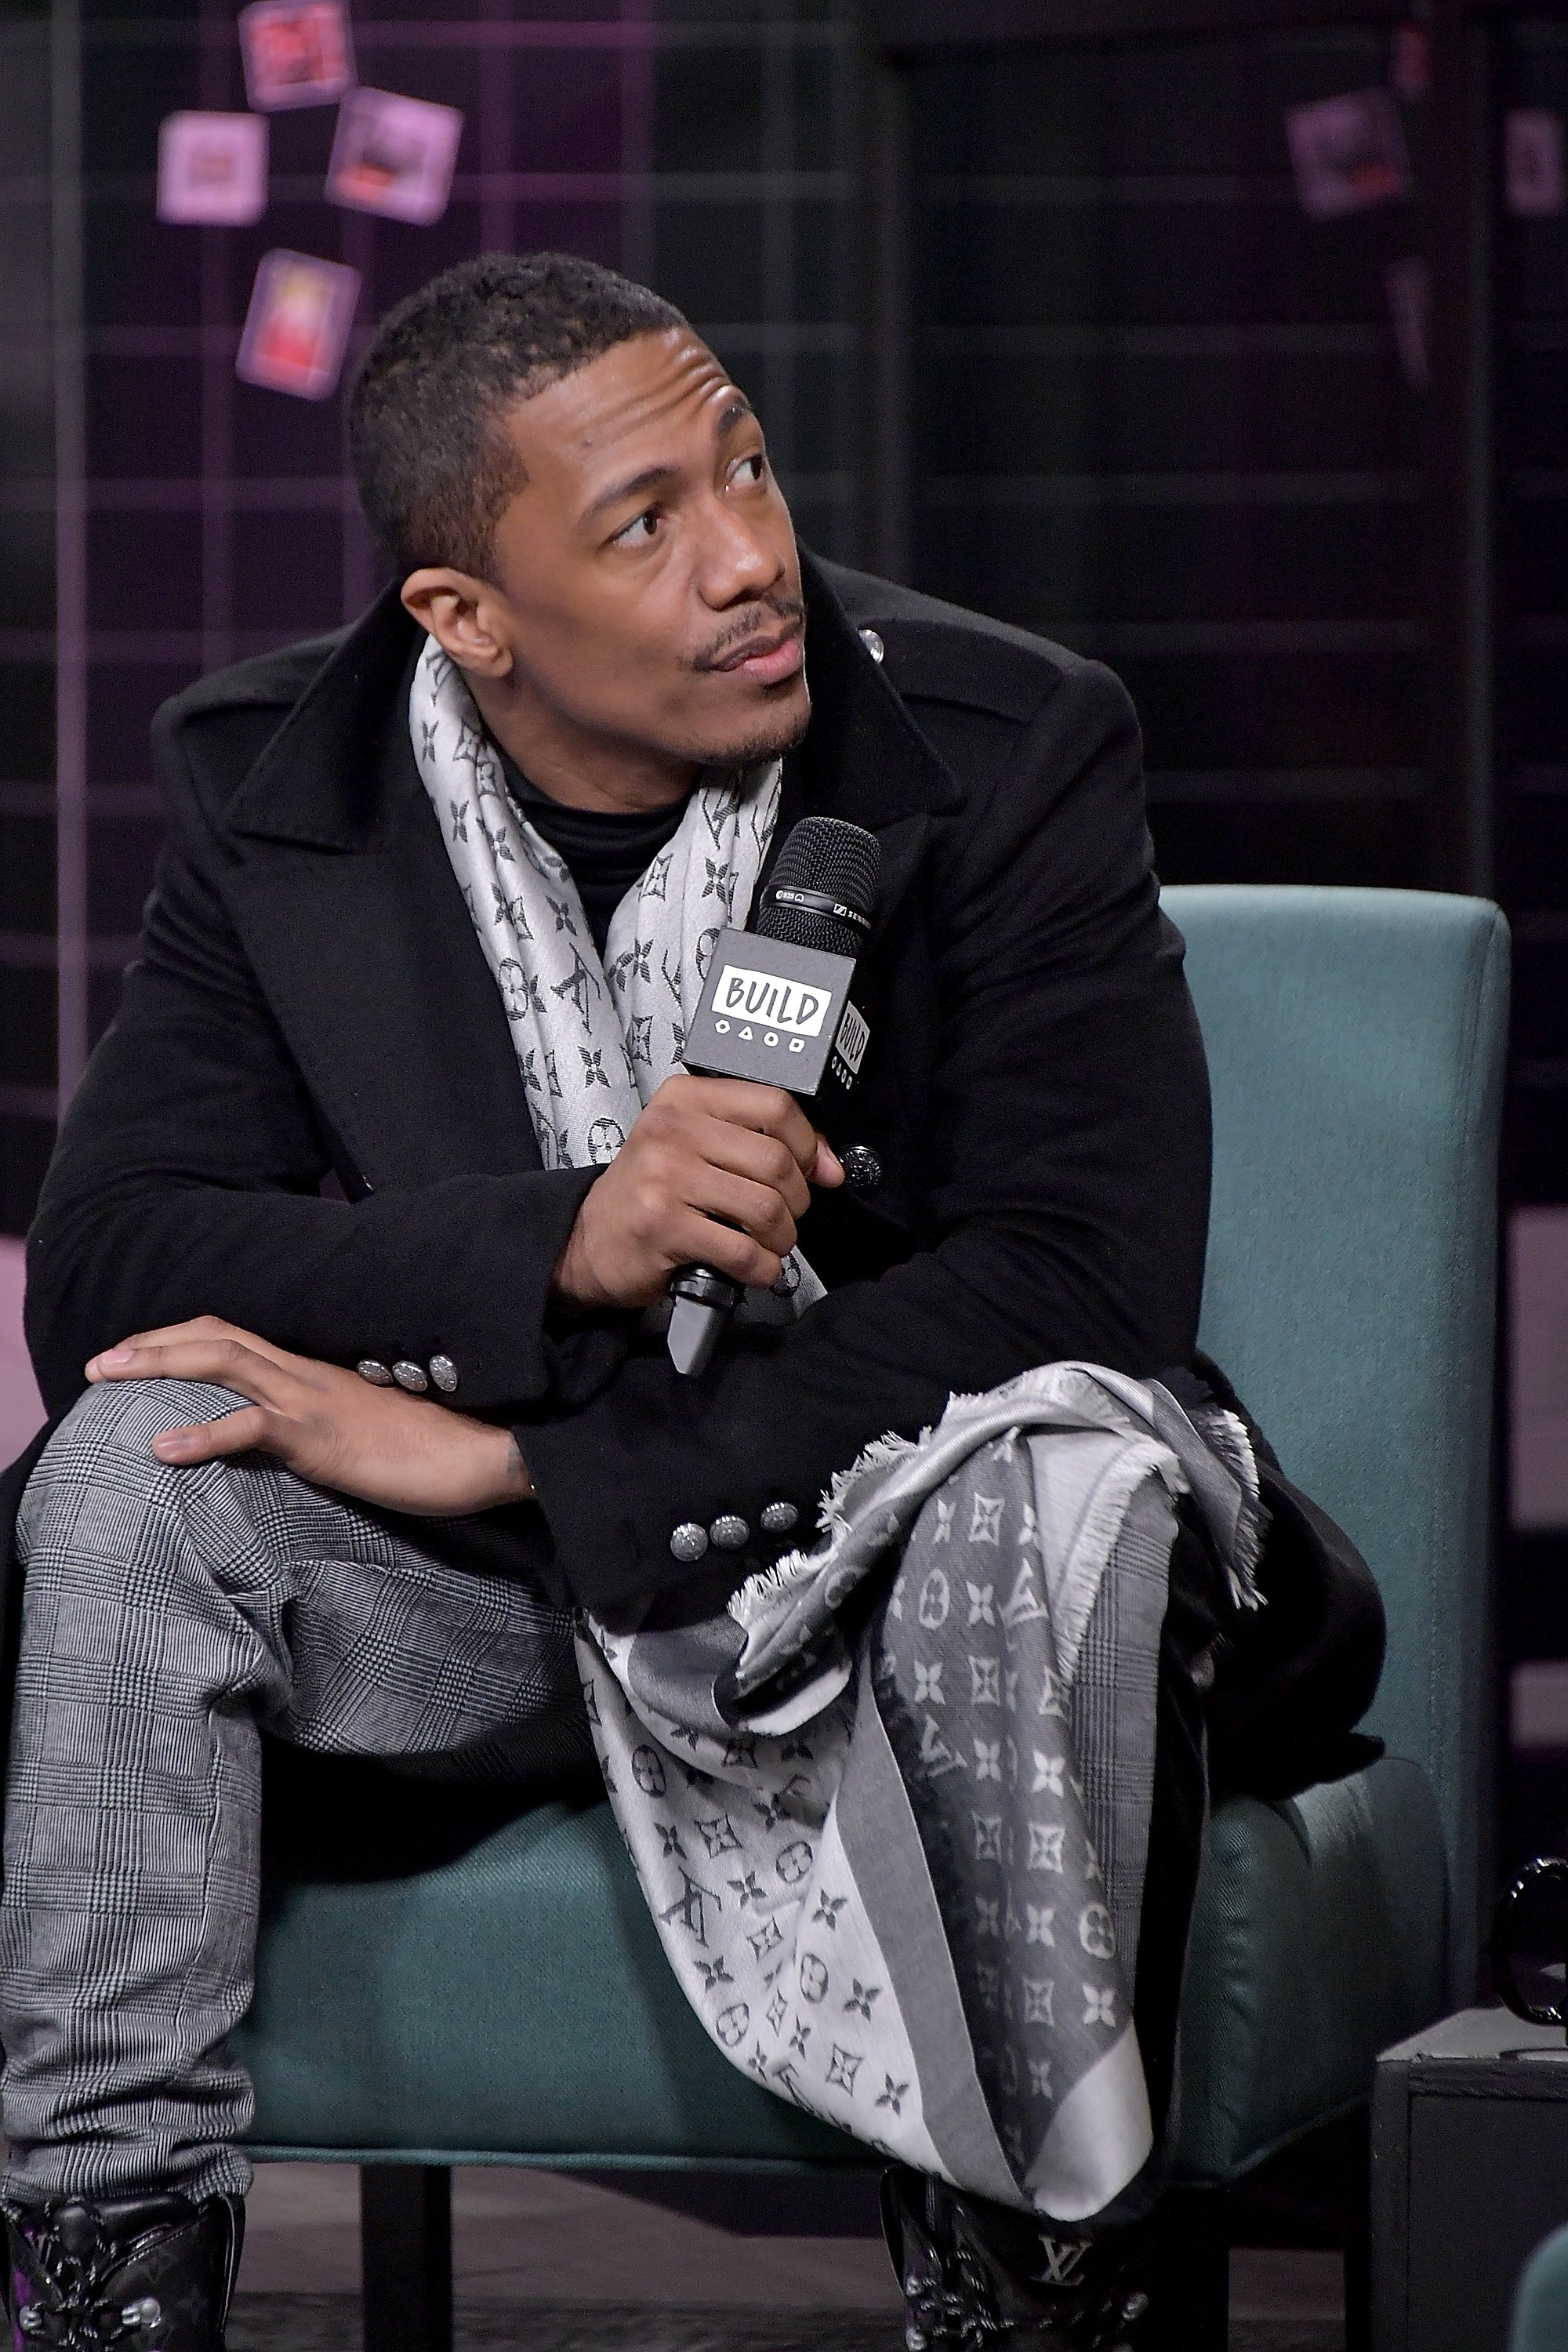 """Nick Cannon visits Build and discusses his reality show, """"The Masked Singer"""" in December 2018 in New York City. 